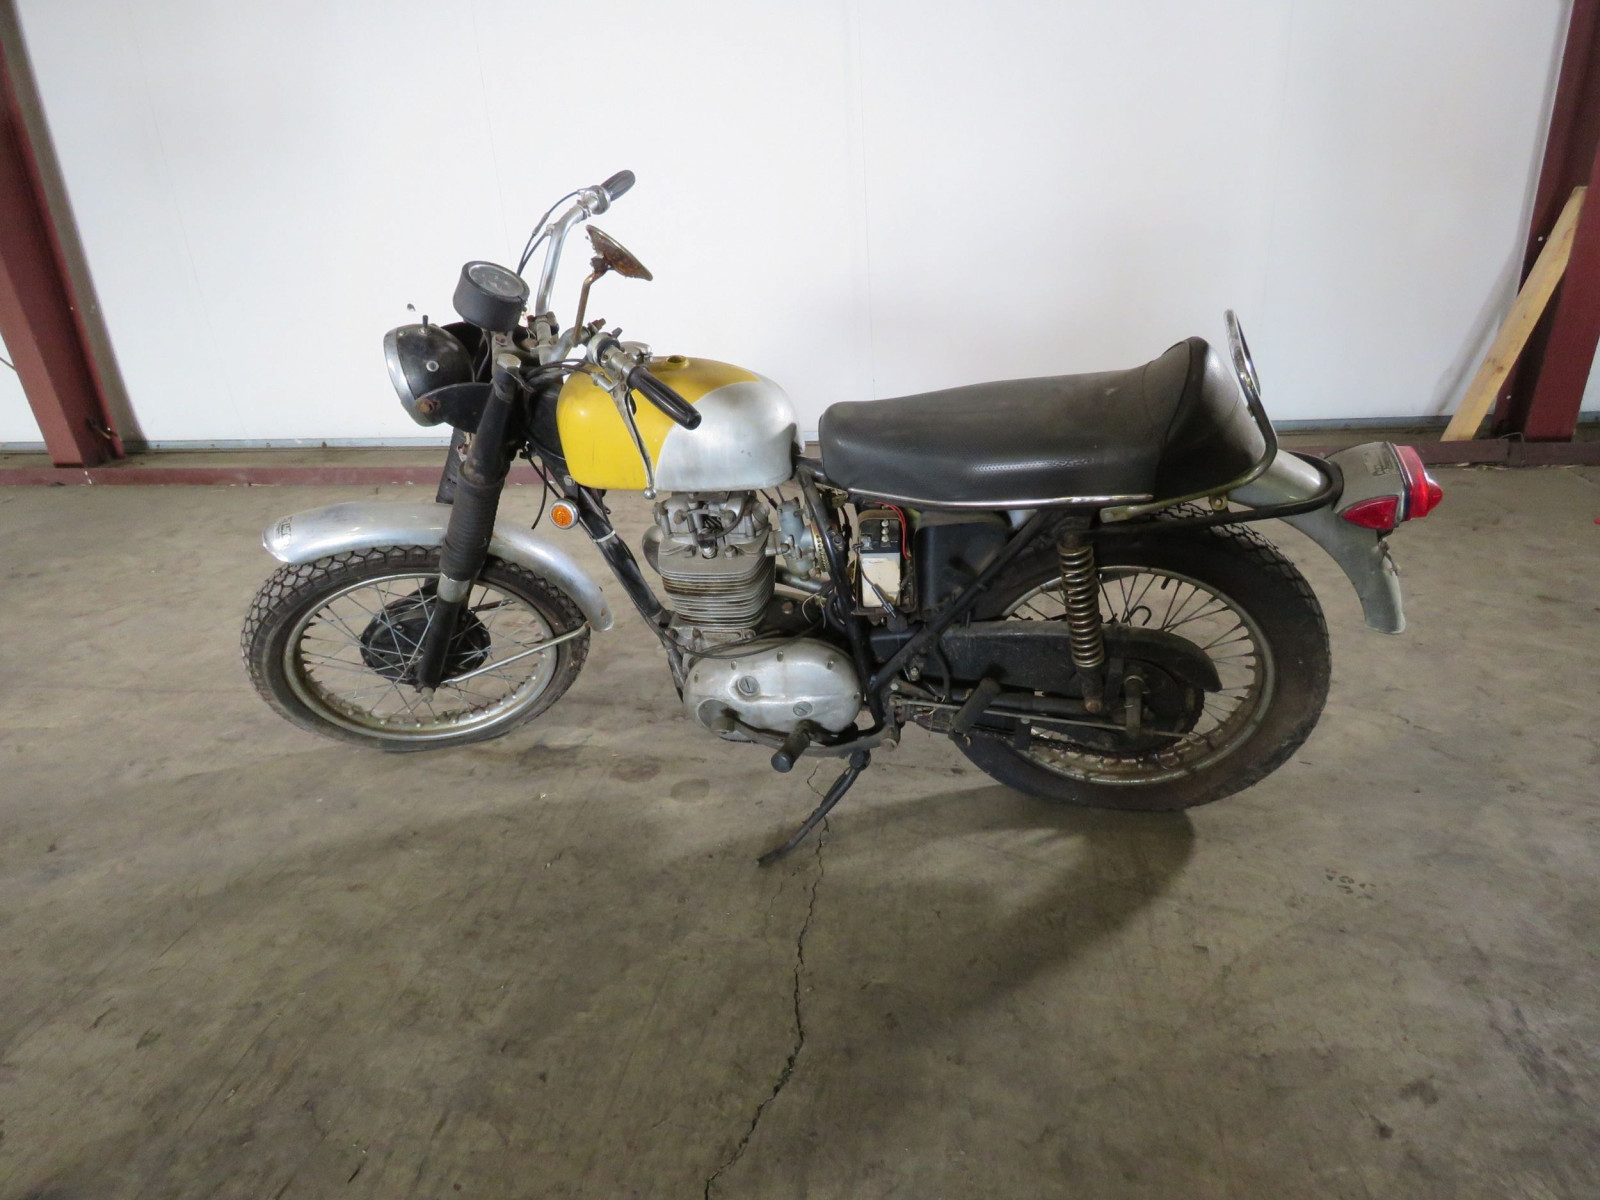 1970 BSA B44 Victor Special Motorcycle - Image 1